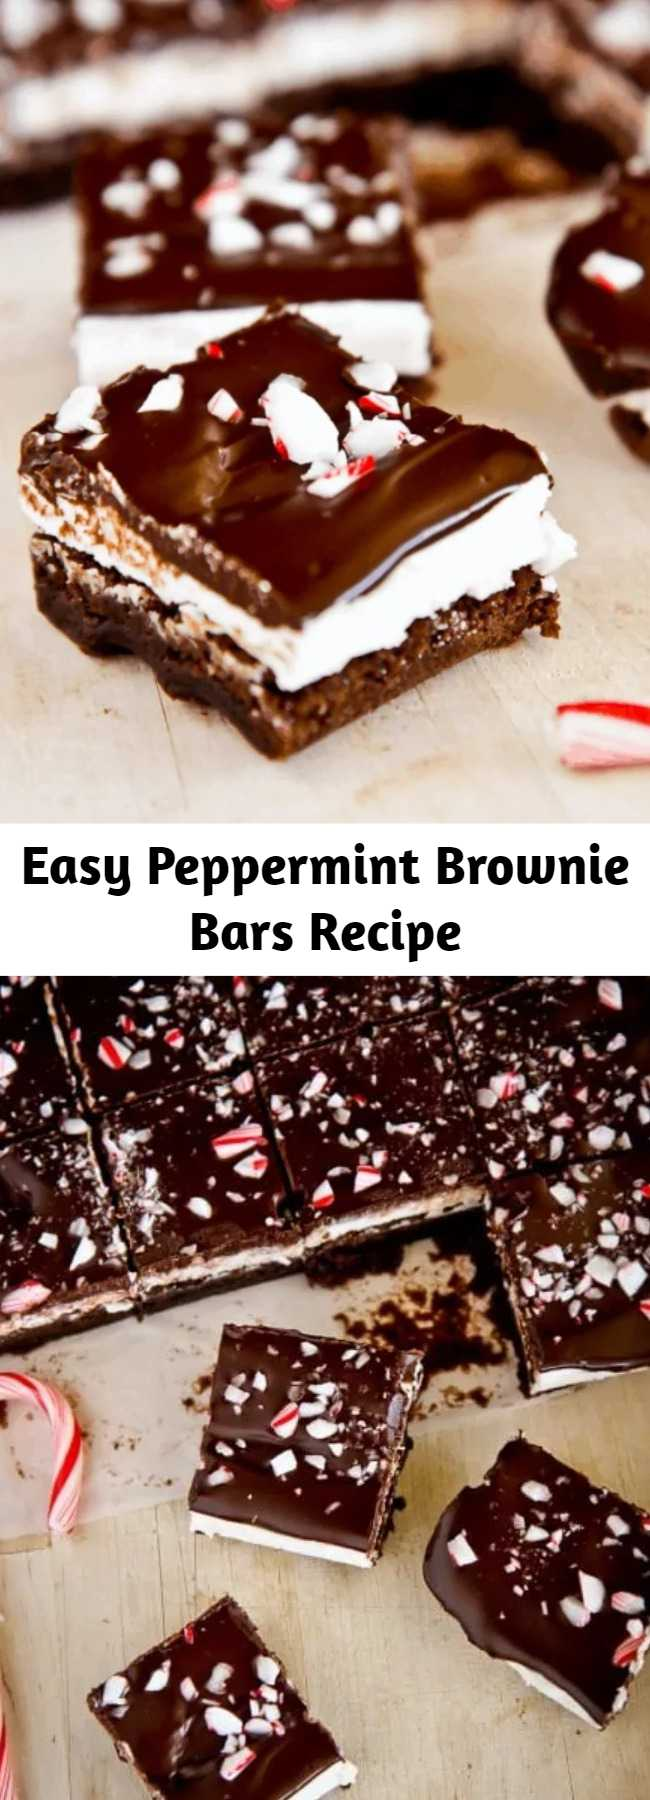 Easy Peppermint Brownie Bars Recipe - Rich and decadent with layers of flavor, these Chocolate Peppermint Brownie Bars are a fantastic holiday dessert. If you love the combo of rich chocolate and refreshing mint, then these brownies are for you! On a holiday cookie tray with other treats these Peppermint Brownie Bars will pretty much steal the show. They are all kinds of minty amazingness.